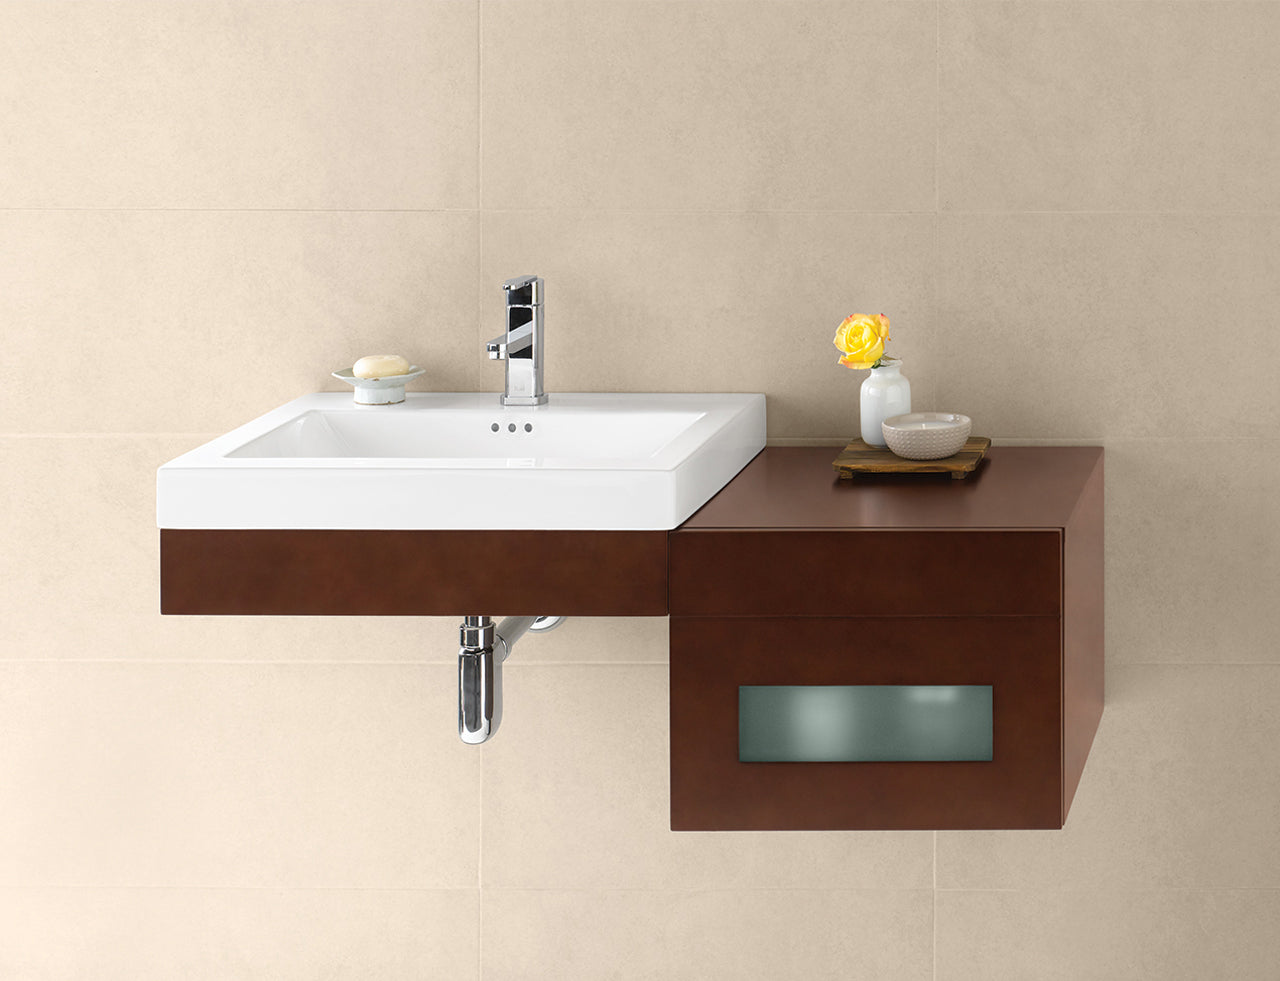 Explore With The Advantages Of Wall Mounted Bathroom Vanities